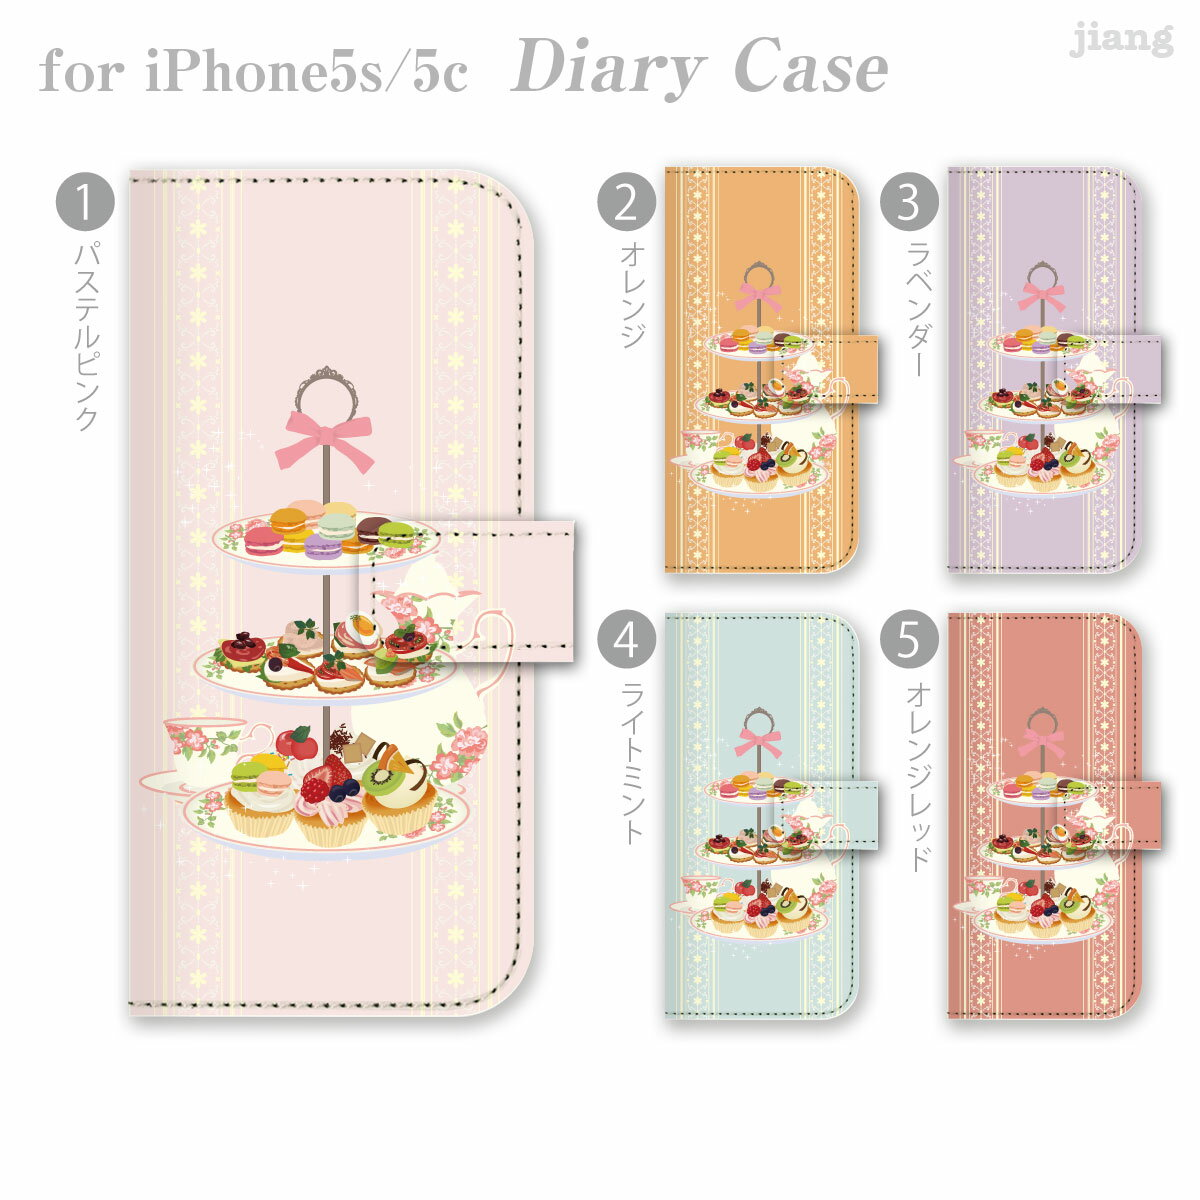 スマホケース 手帳型 全機種対応 手帳 ケース カバー レザー イラスト iPhone7 iPhone6s iPhone6 Plus iPhone SE iPhone5s iphone5c Xperia X Performance SO-04H Z5 Z4 Z3 A4 SO-02H SO-01H SOV33 aquos SH-04H SHV34 Xx3 arrows アフタヌーンティー 09-ip5-ds0011-zen